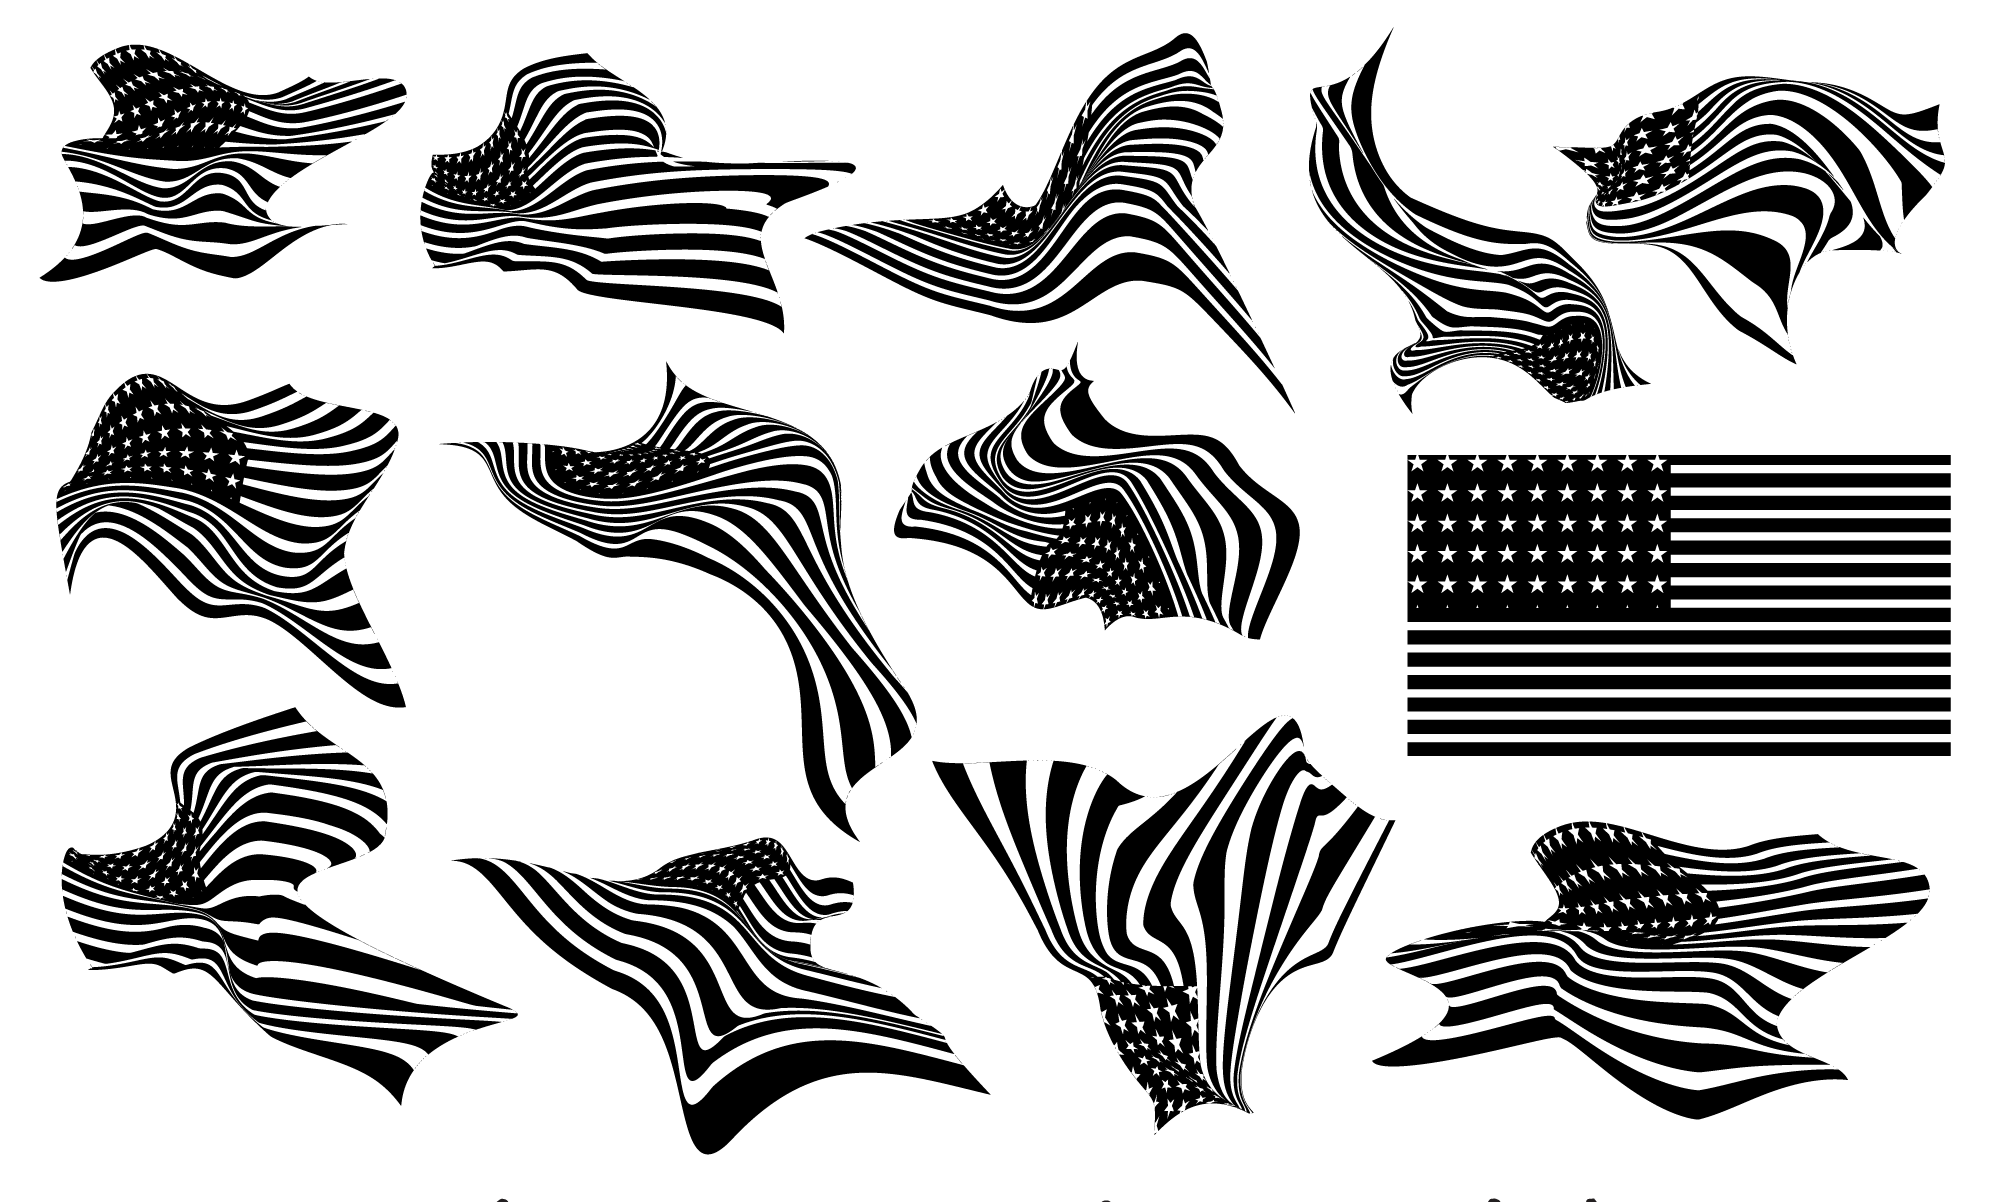 wavy-USA-Flags-PNG-Vector-Black-shapes